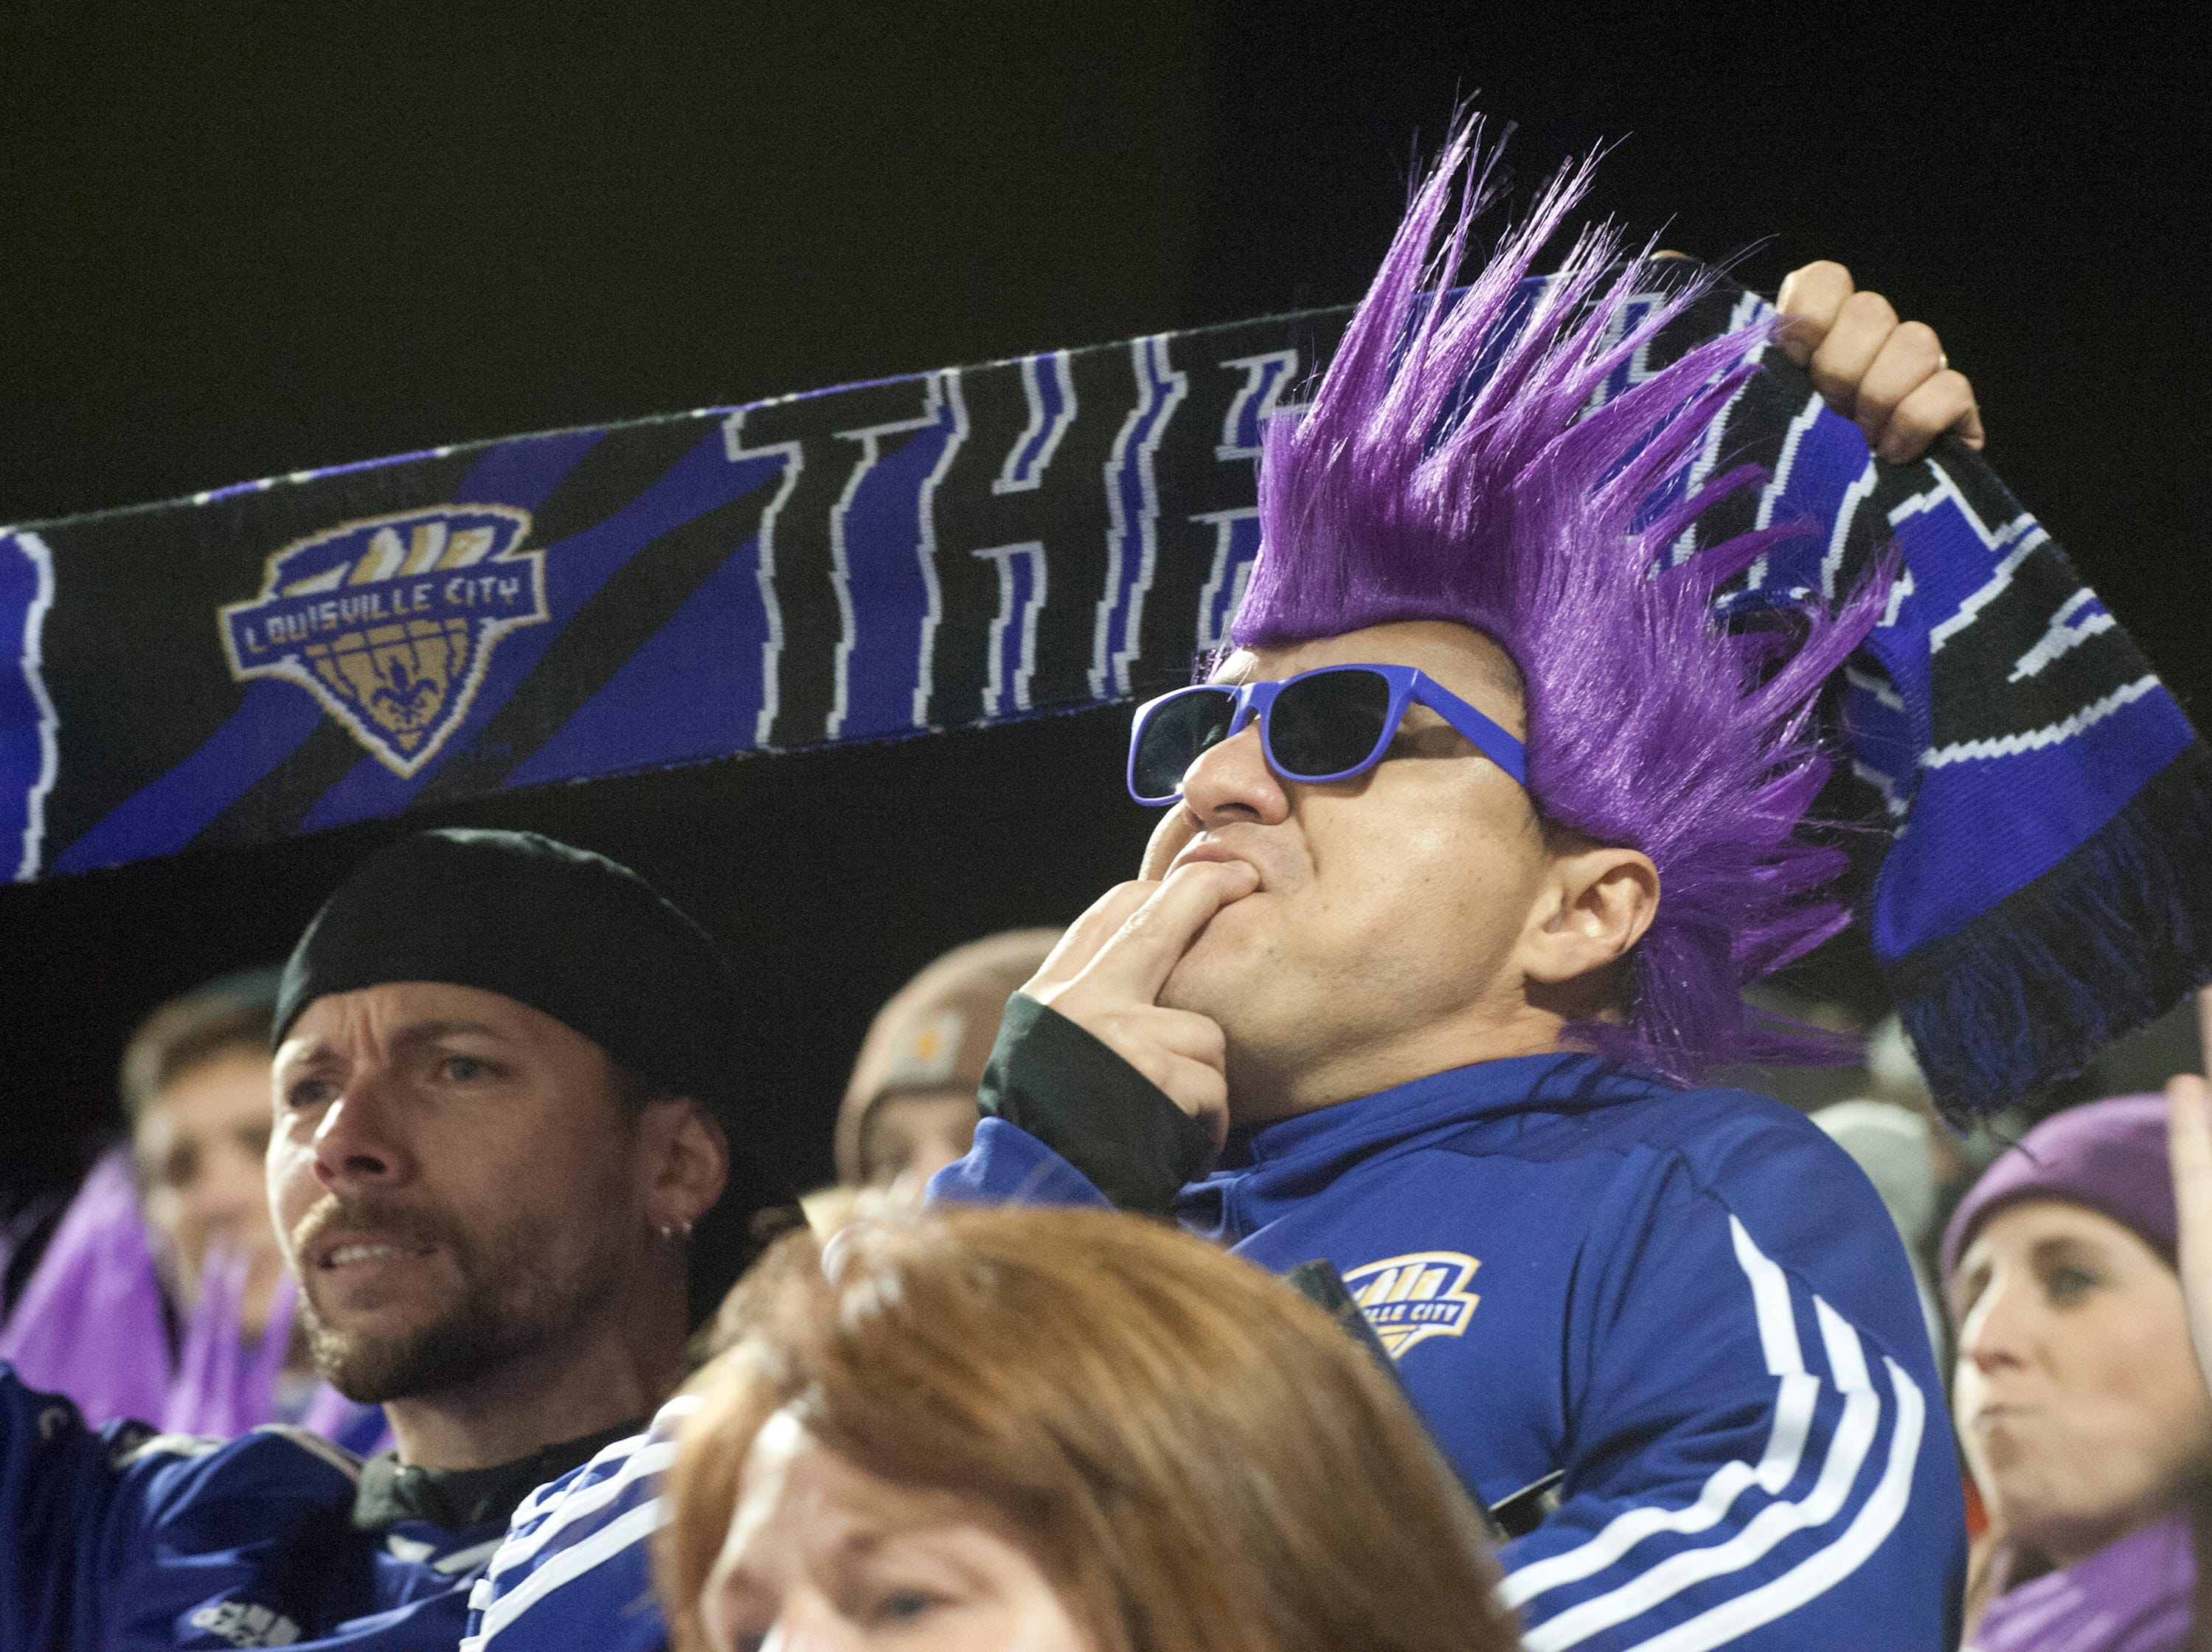 Jorge Pazmino of Bullitt Co., Ky., whistles his support for the home team as Louisville City FC takes on the Phoenix Rising FC for the 2018 USL Cup.November 08, 2018